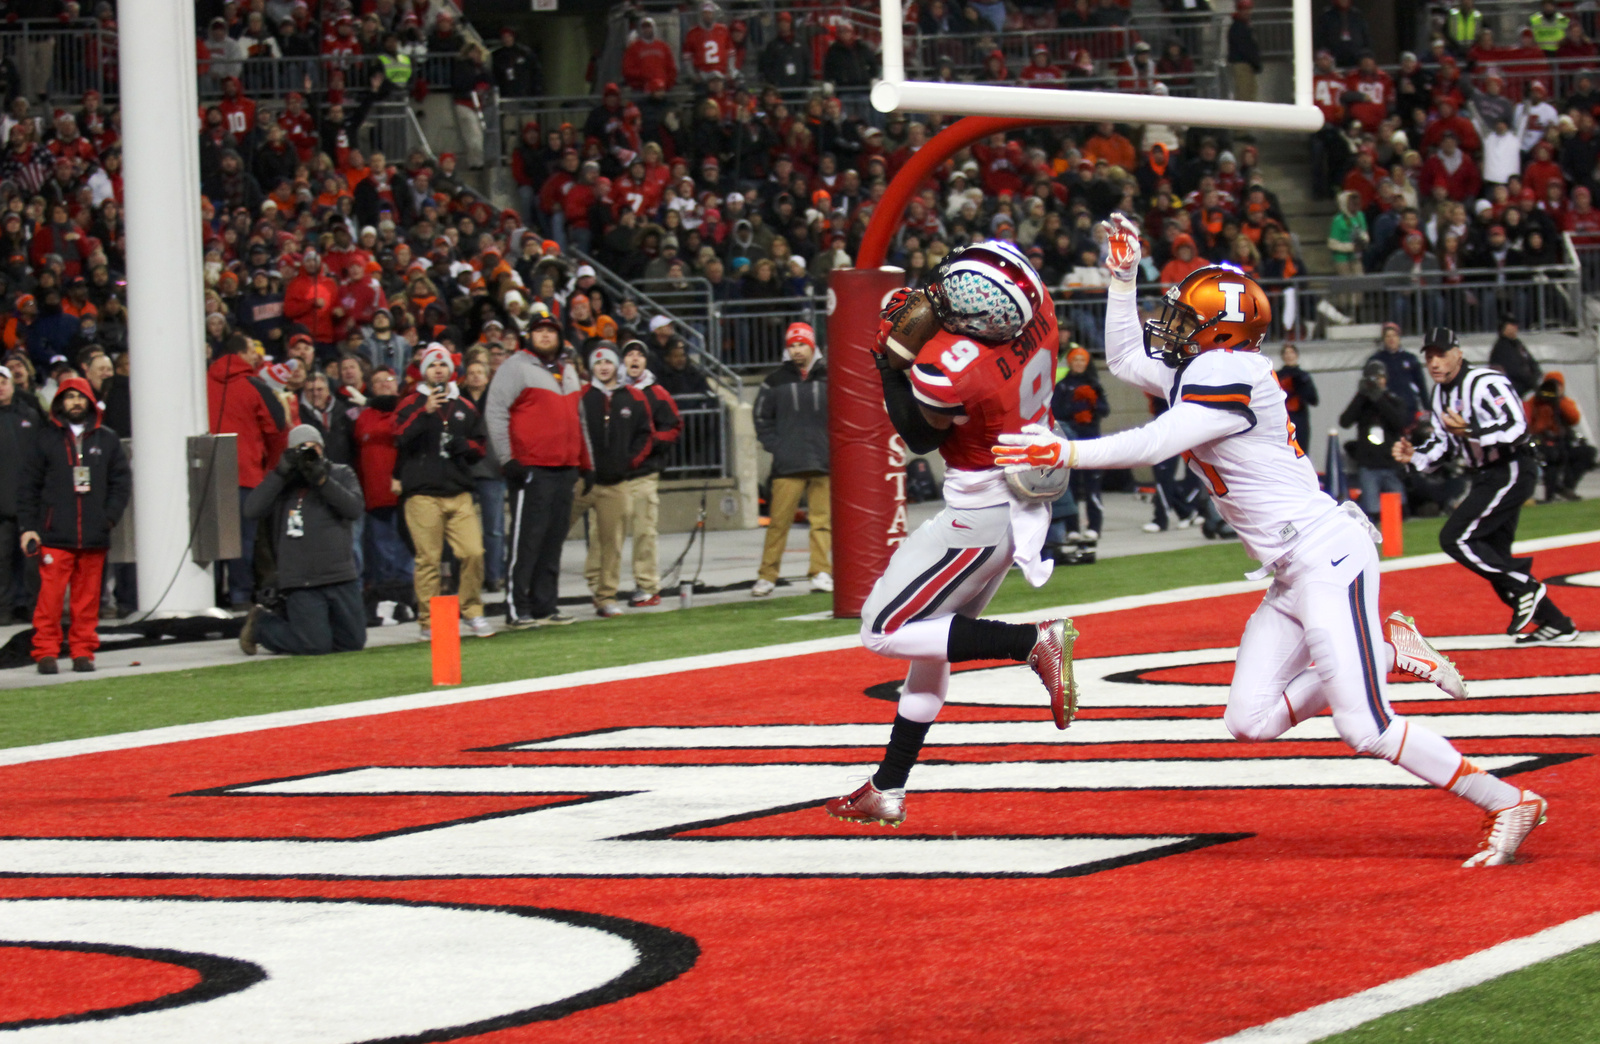 Then-senior wide receiver Devin Smith (9) catches a touchdown during a game against Illinois on Nov. 1 at Ohio Stadium. OSU won 55-14.